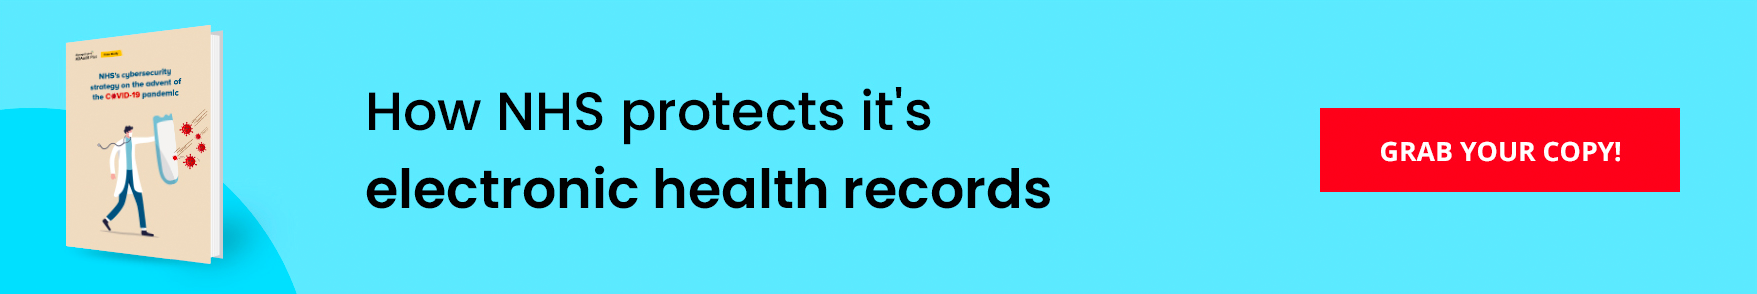 How NHS protects it's electronic health records